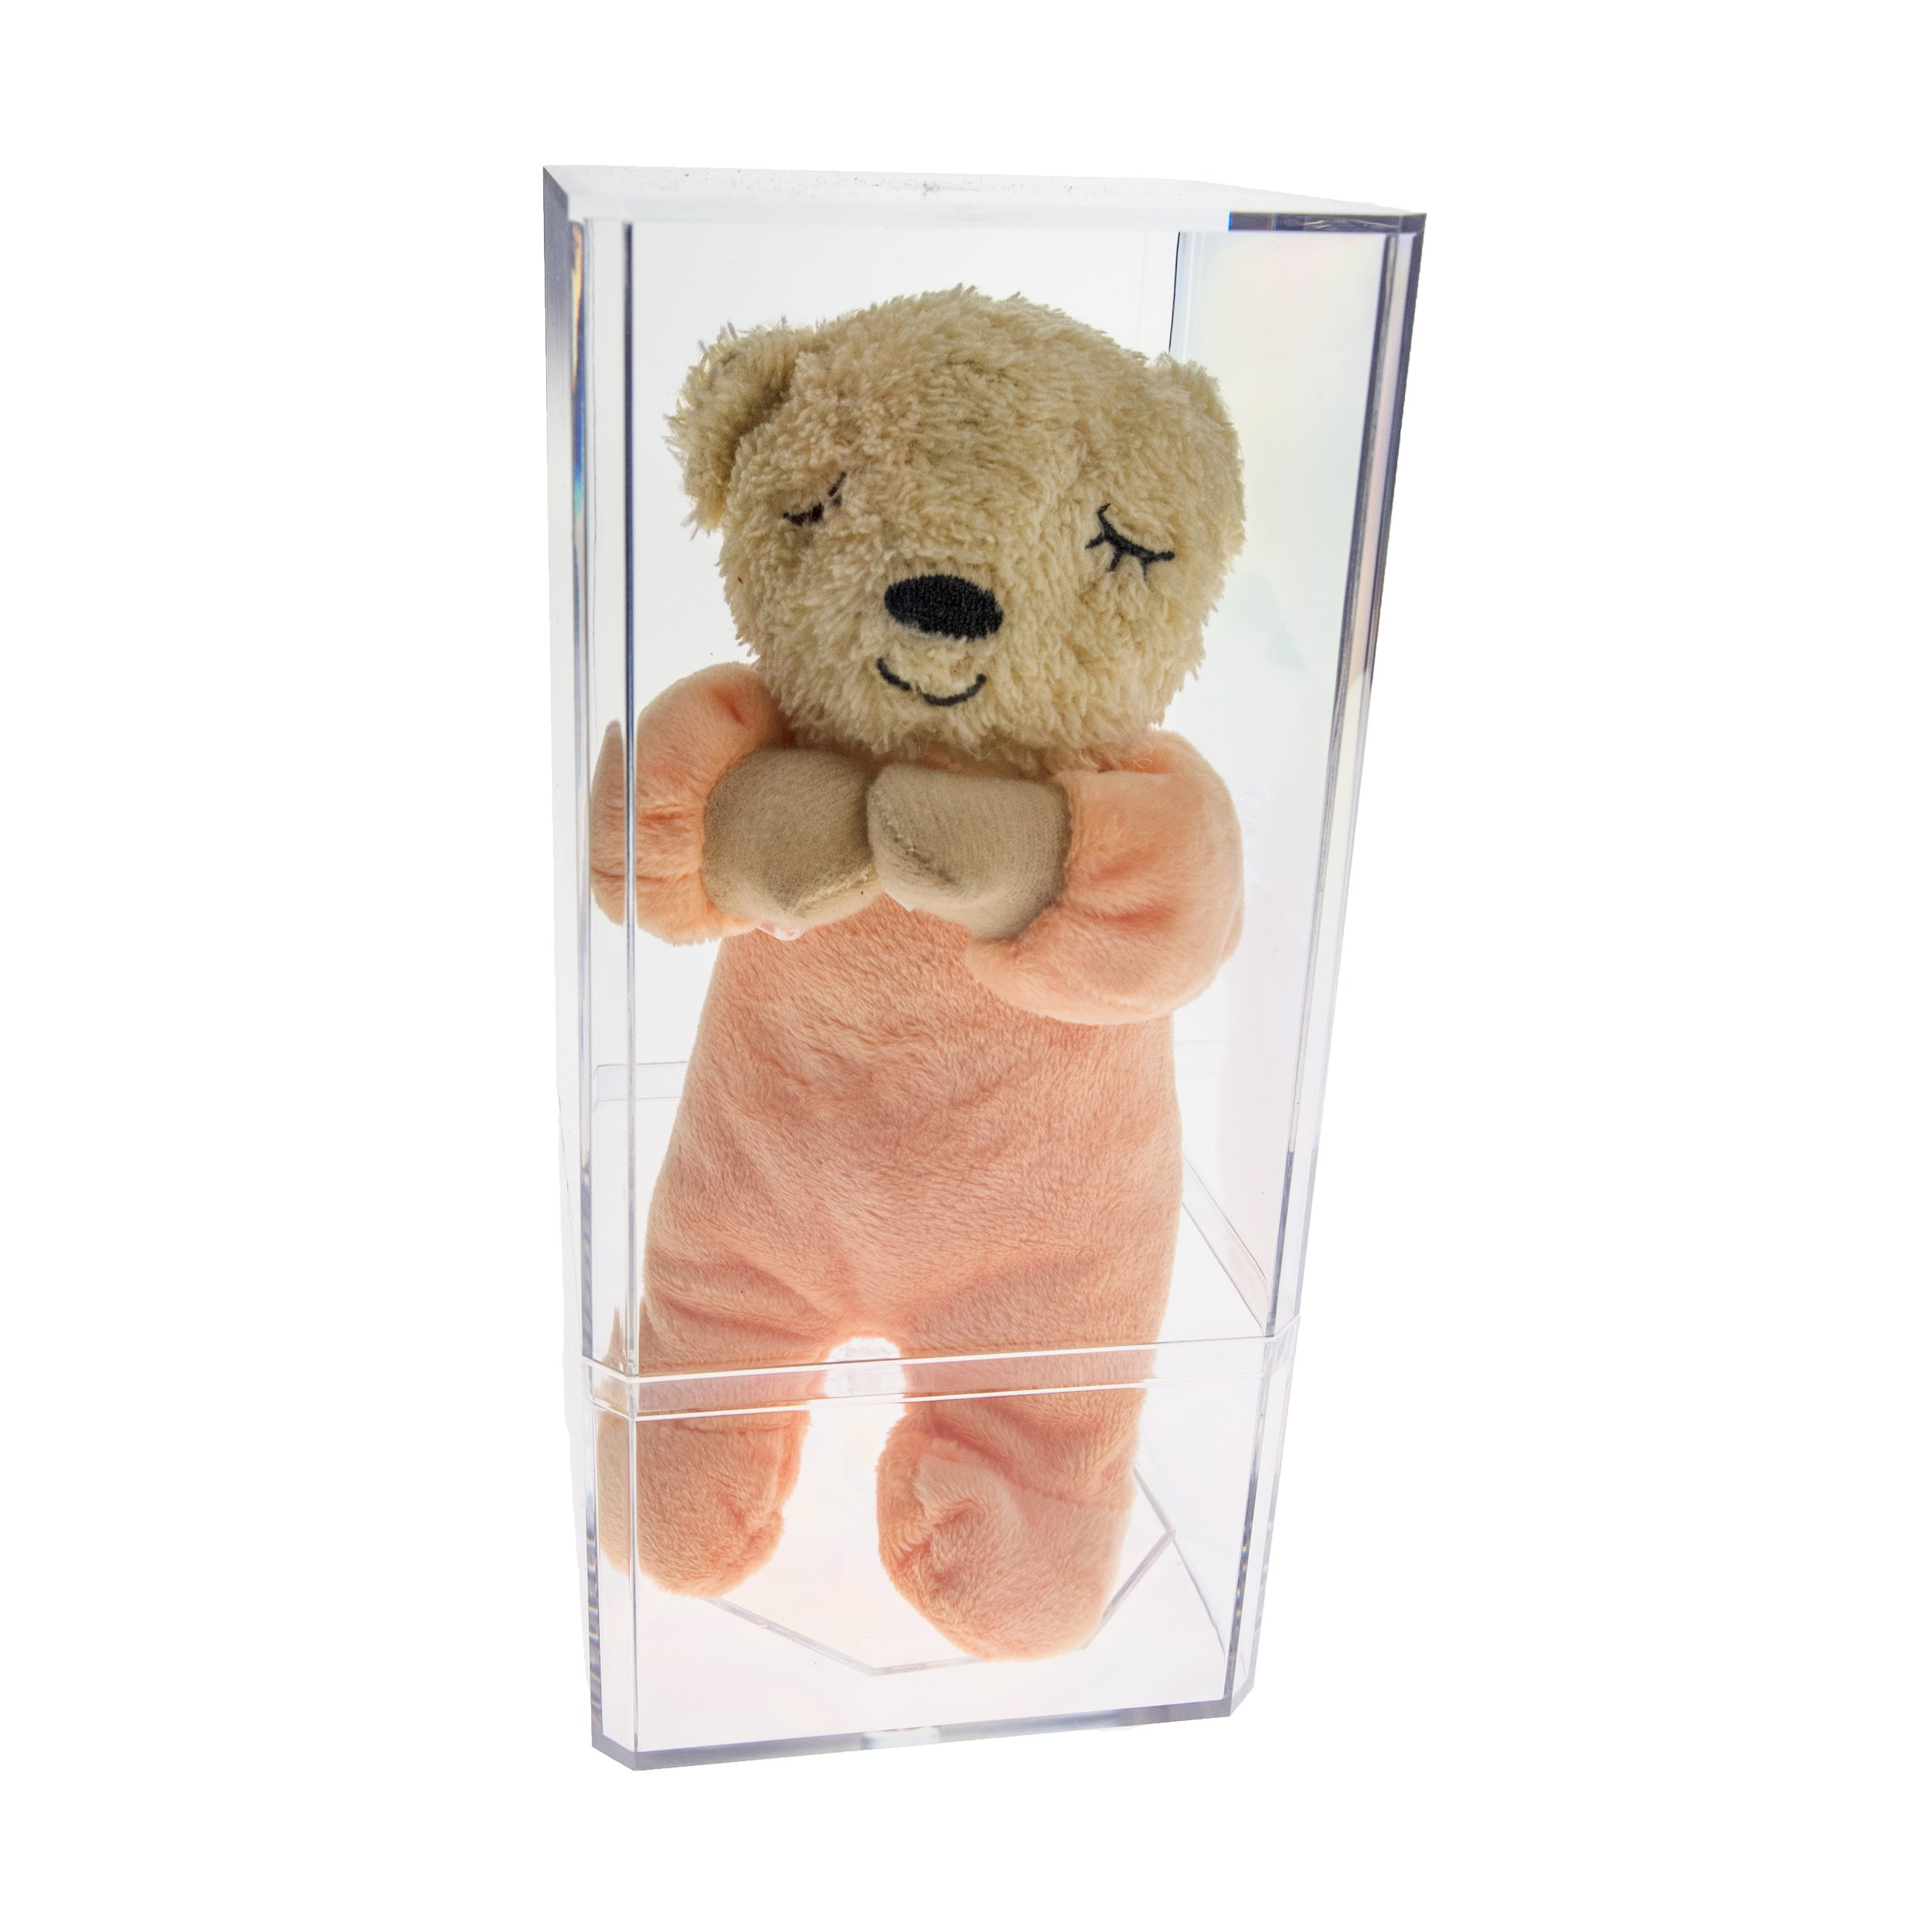 Source One Clear Acrylic Small Doll Case & Stand 8.5 Inches Tall 4 x 4 Inch Base (2 Piece Set, Combo)